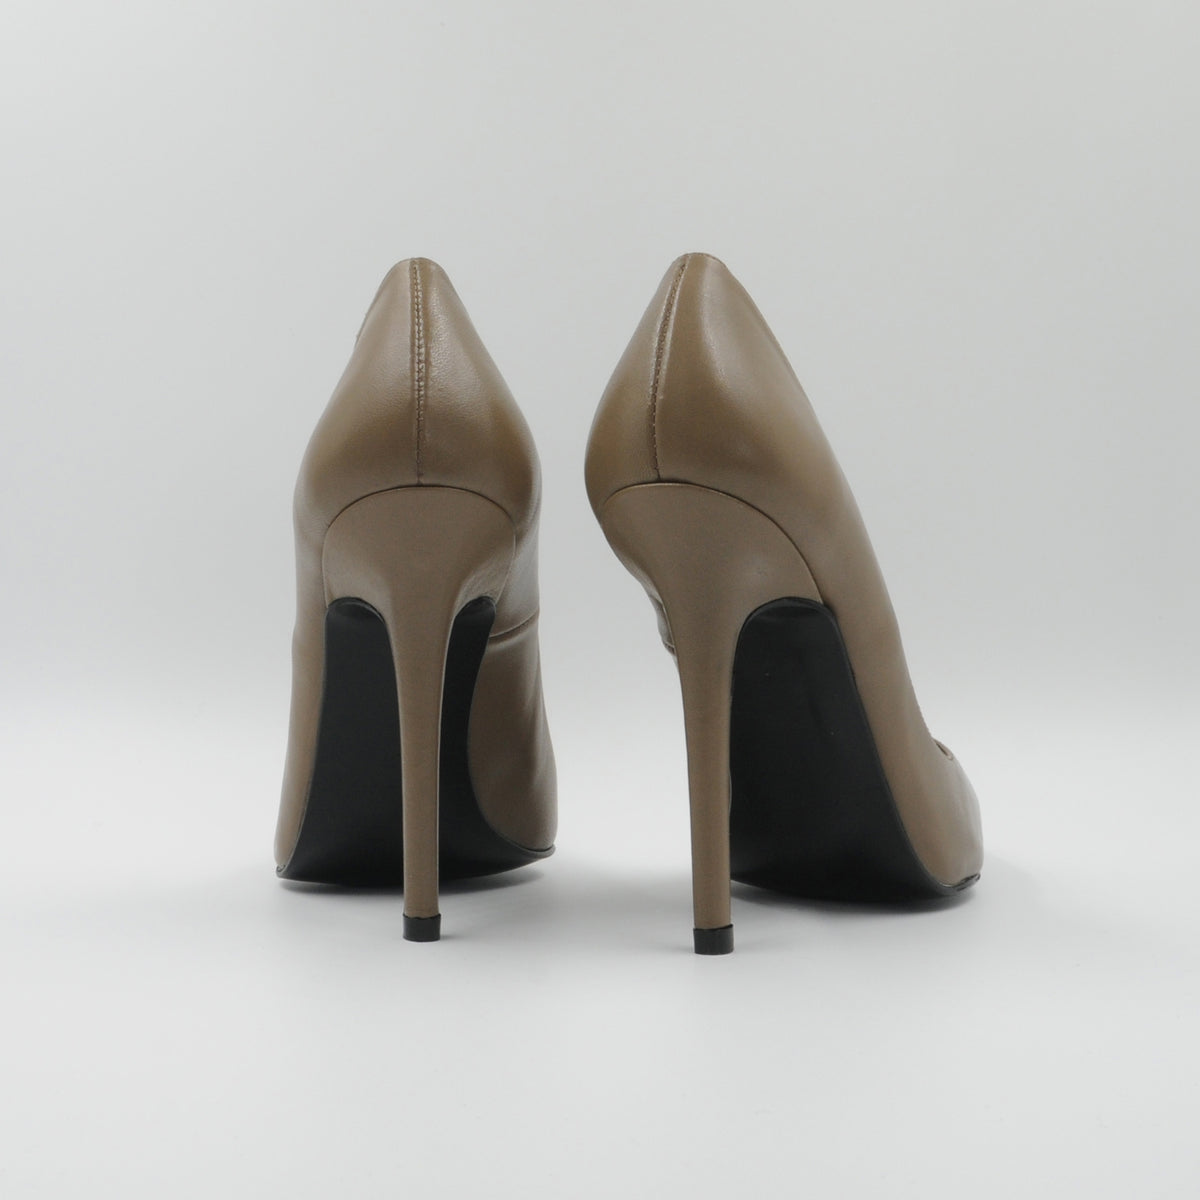 Lola Domecq Martina In Beige Handmade leather high heels